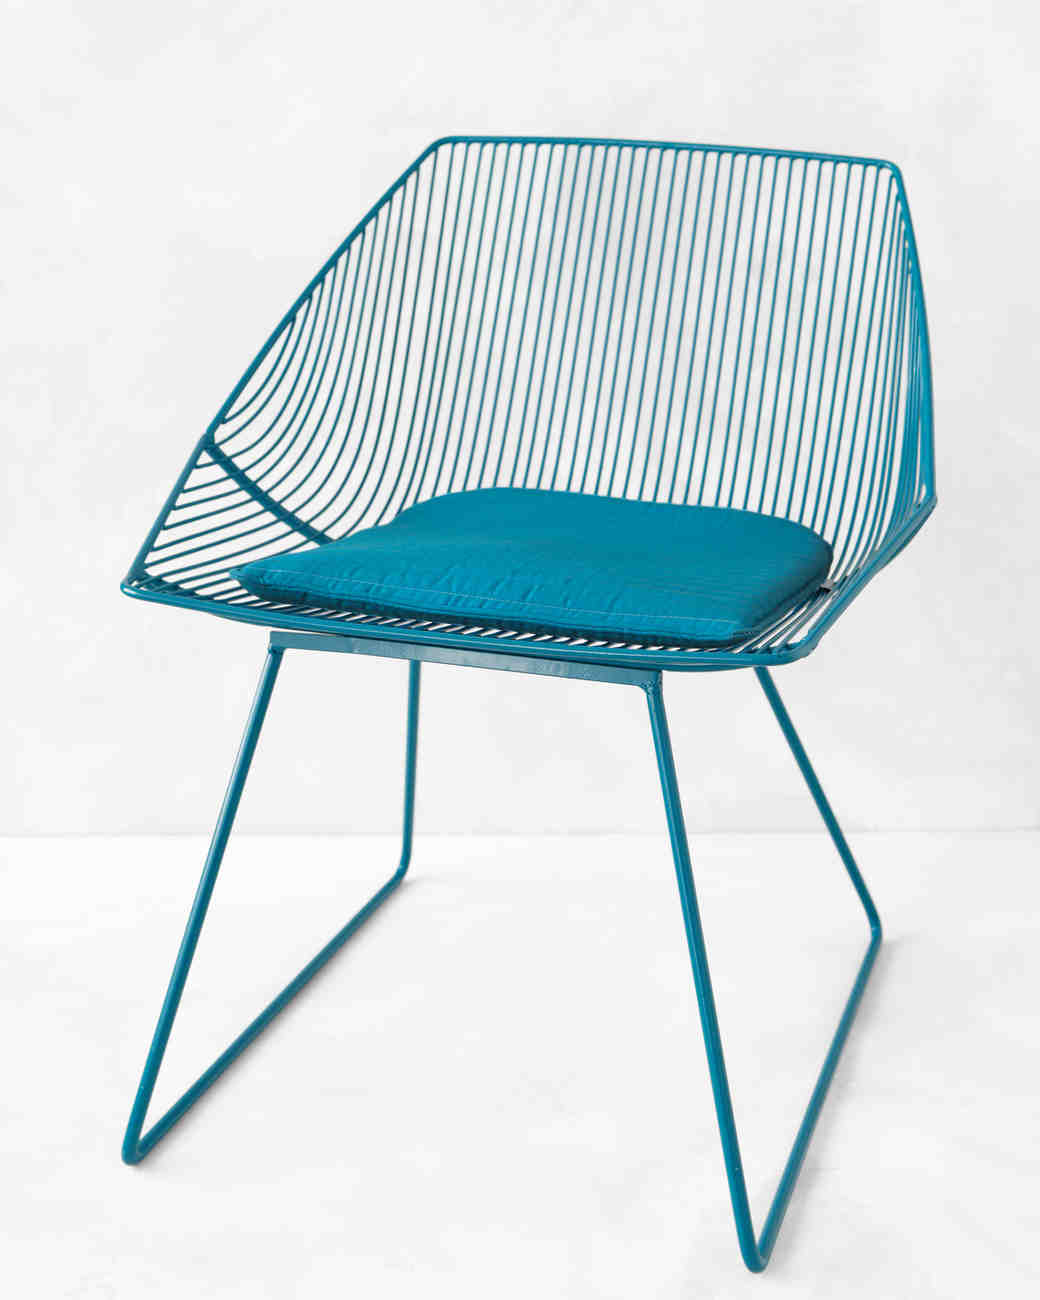 bend-chair-mwd108187.jpg